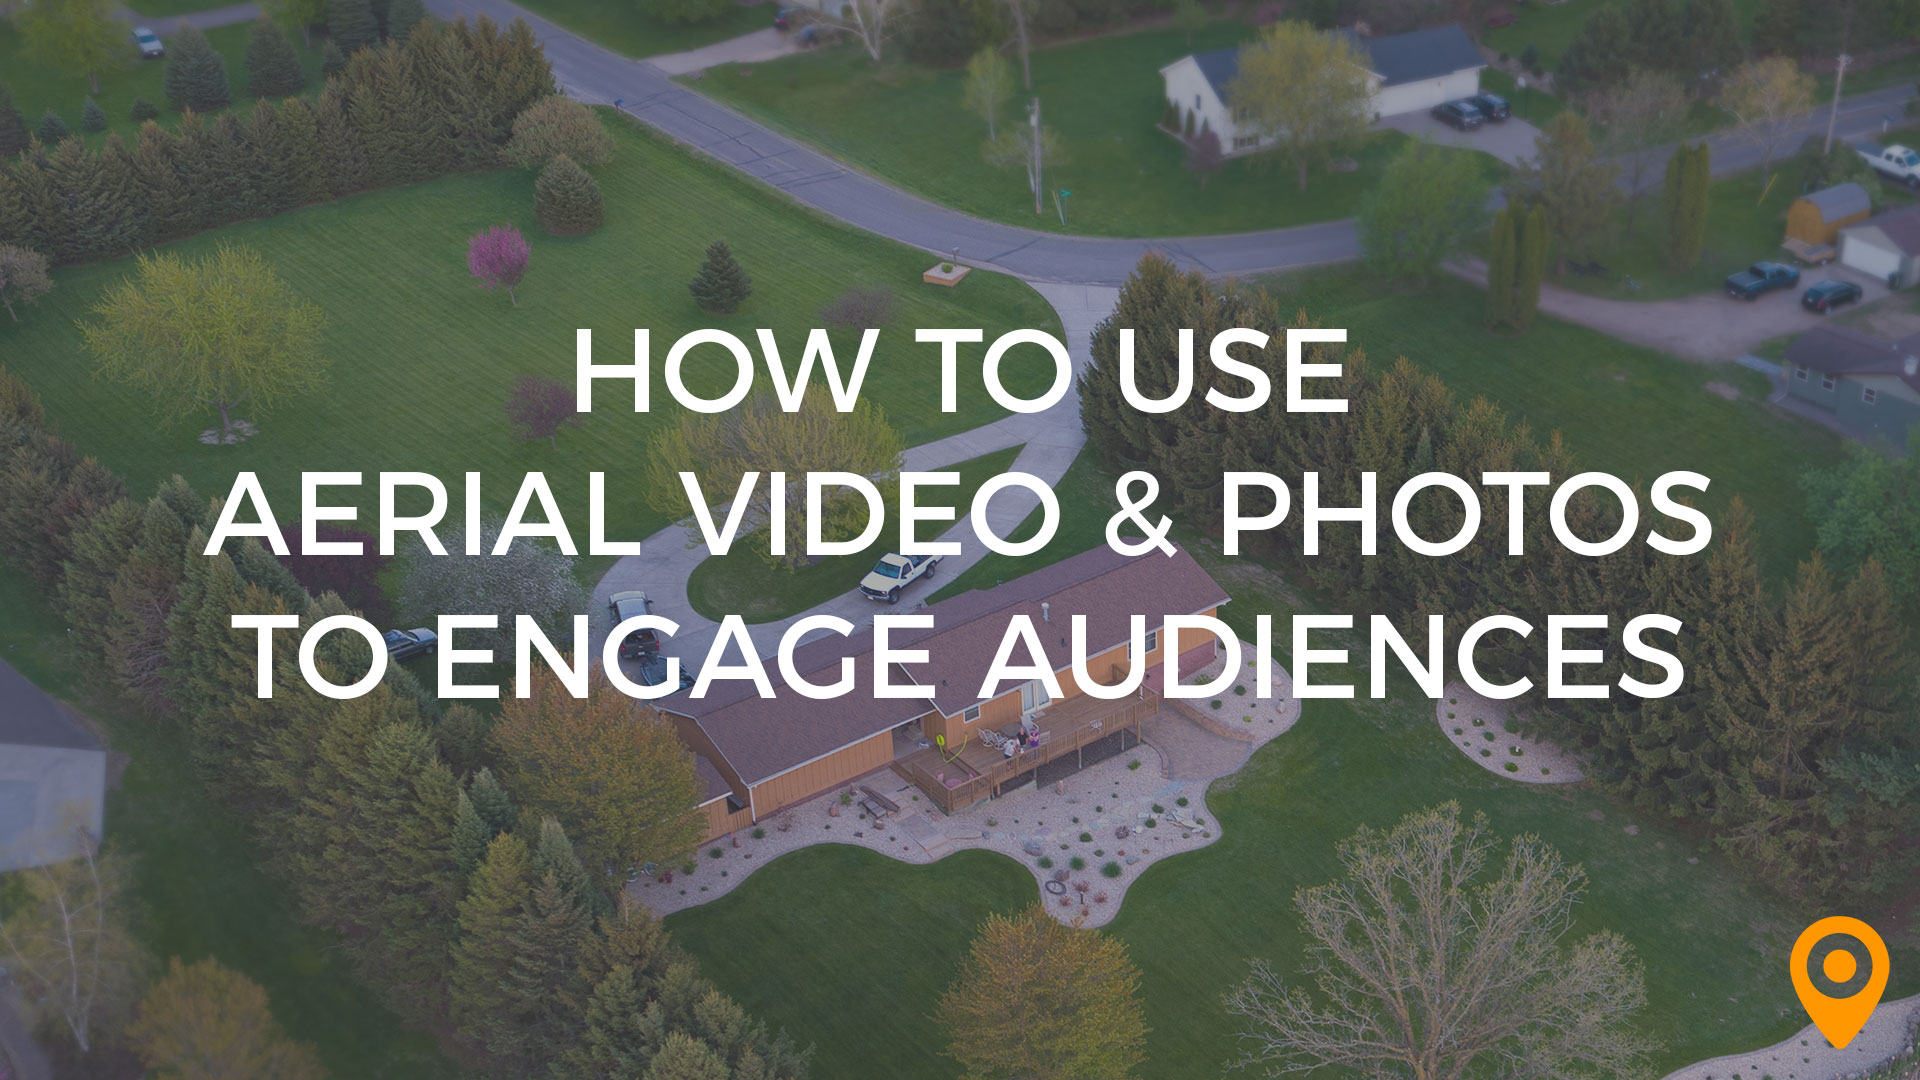 How to Use Aerial Video & Photos to Engage Audiences